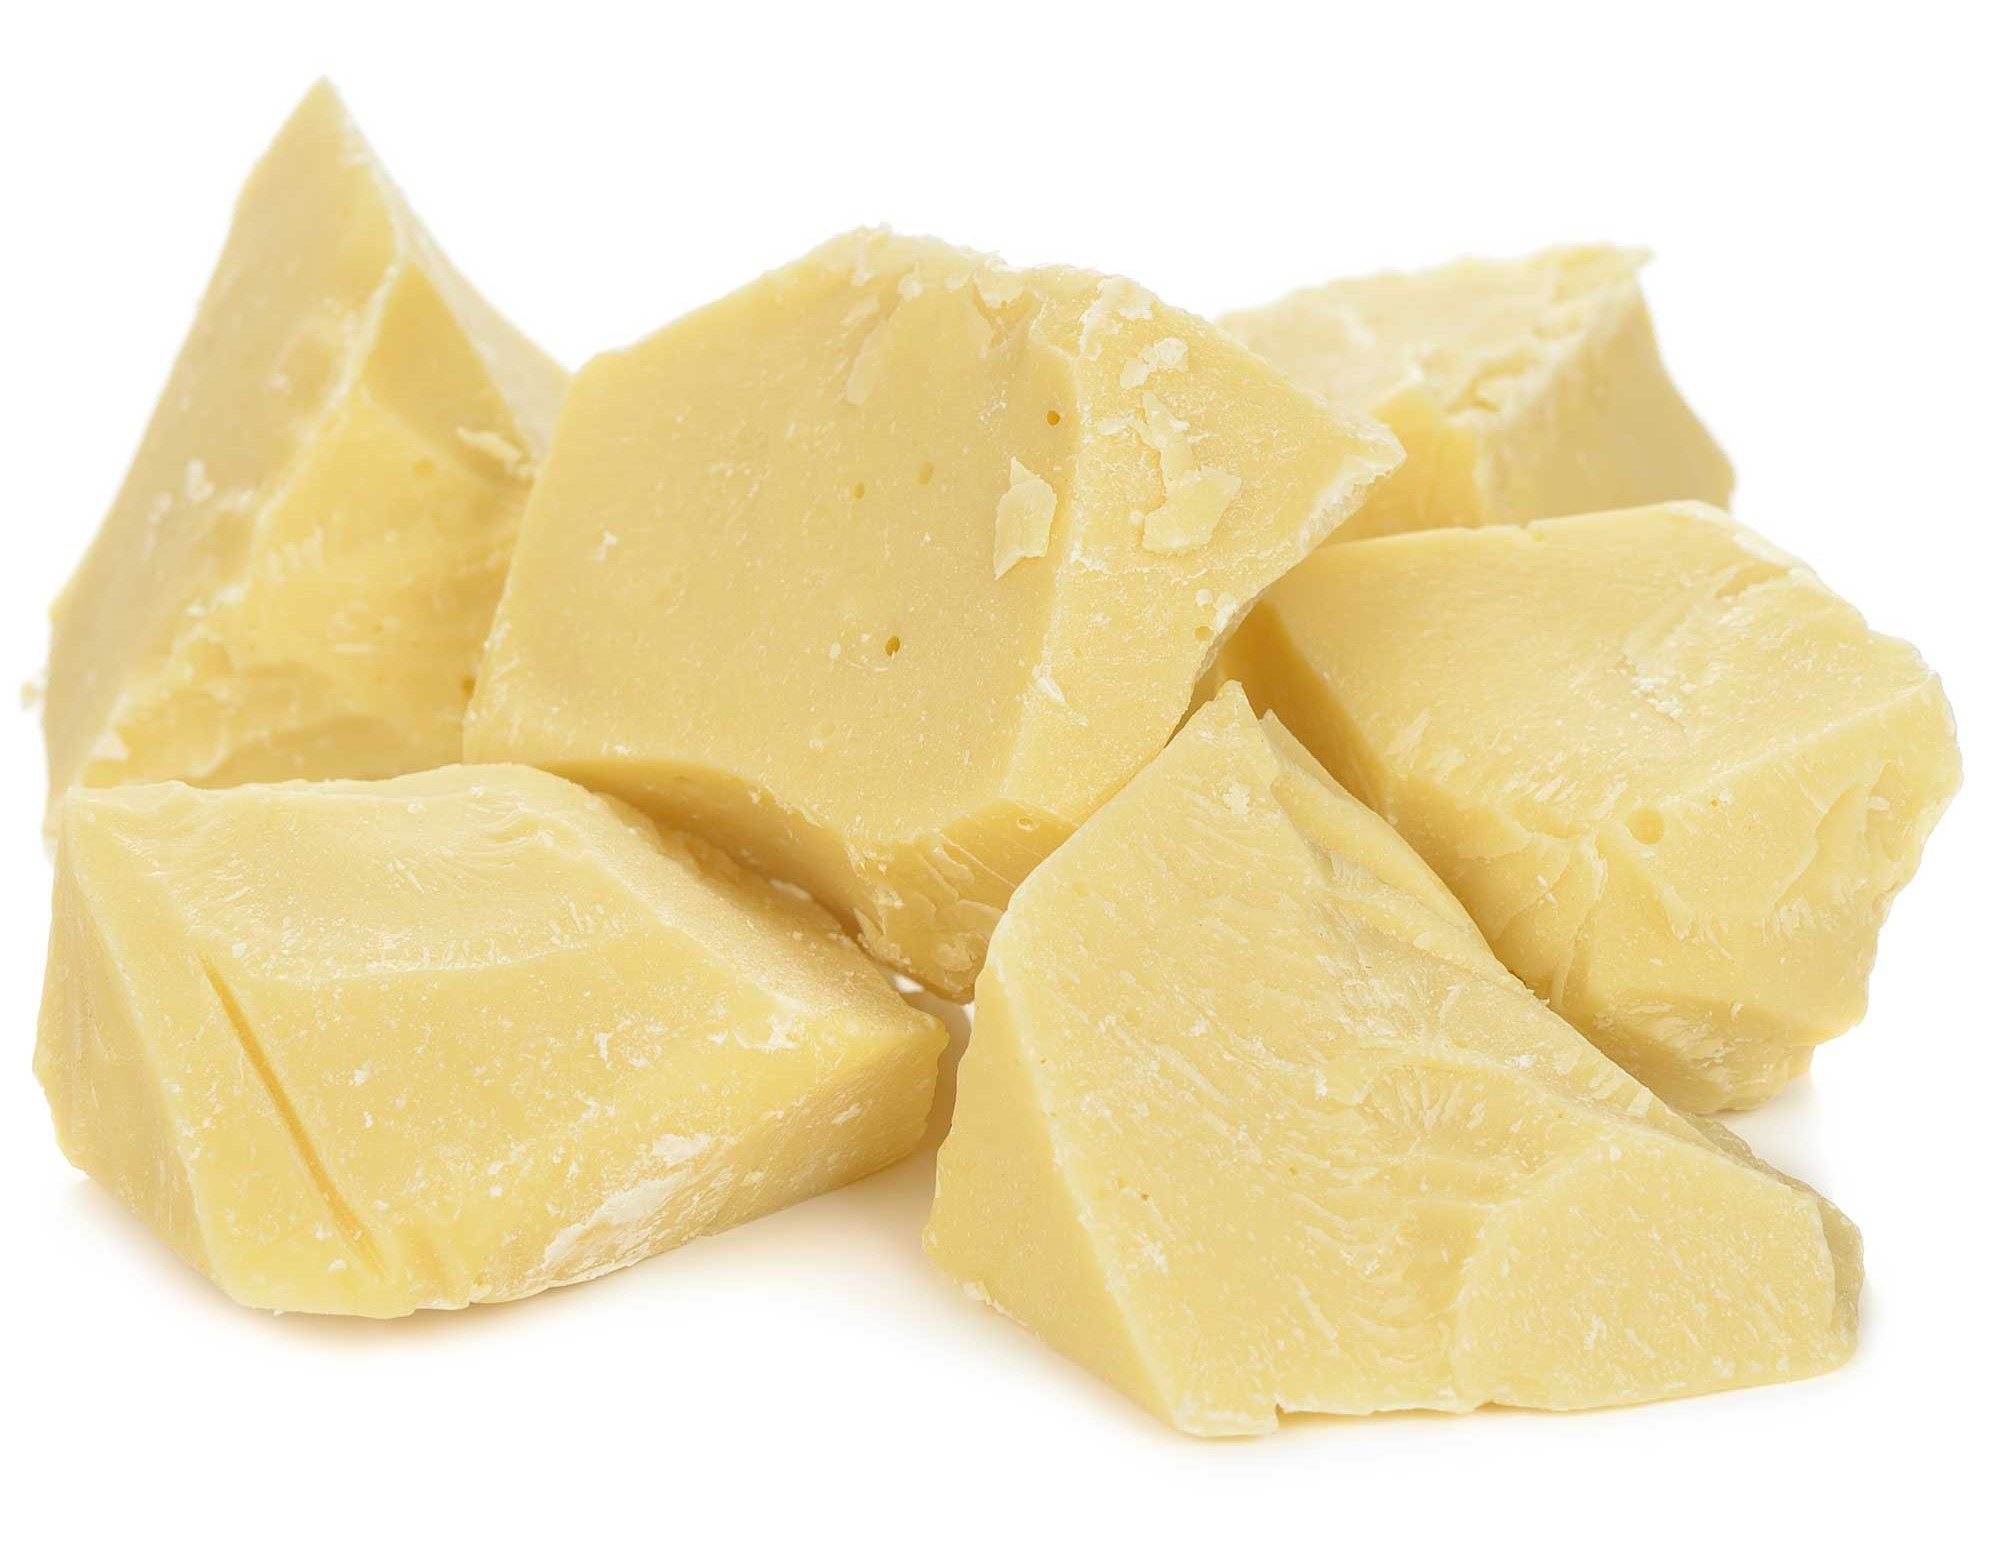 Raw 100% Pure Cocoa Butter Chunks by Its Delish, 2 lbs by It's Delish (Image #1)